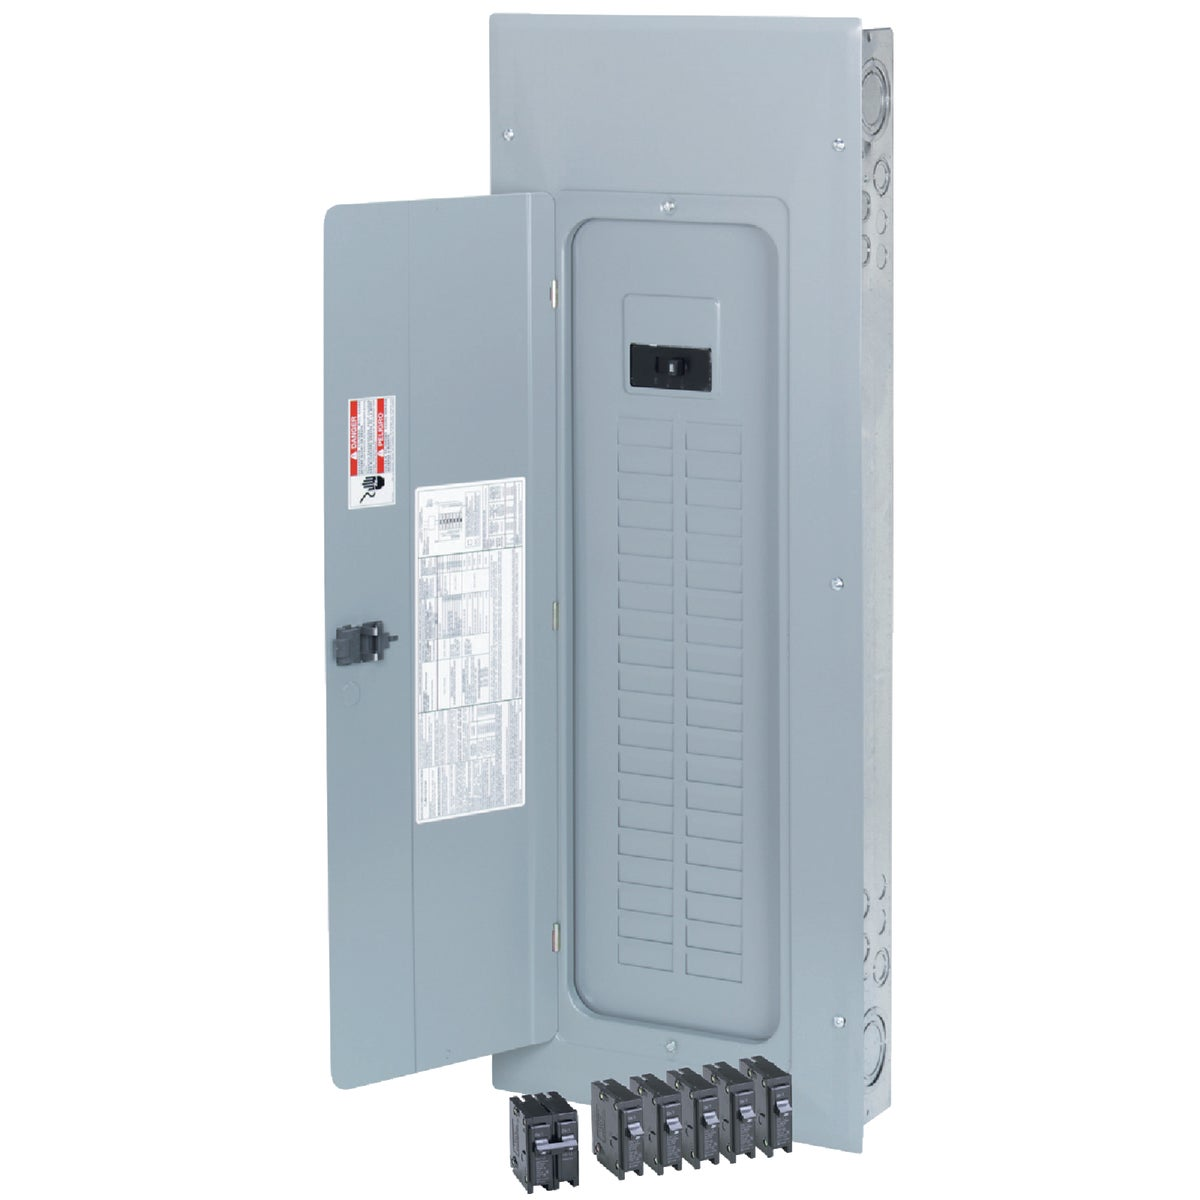 200A LOAD CENTER - BR4040B200V by Eaton Corporation